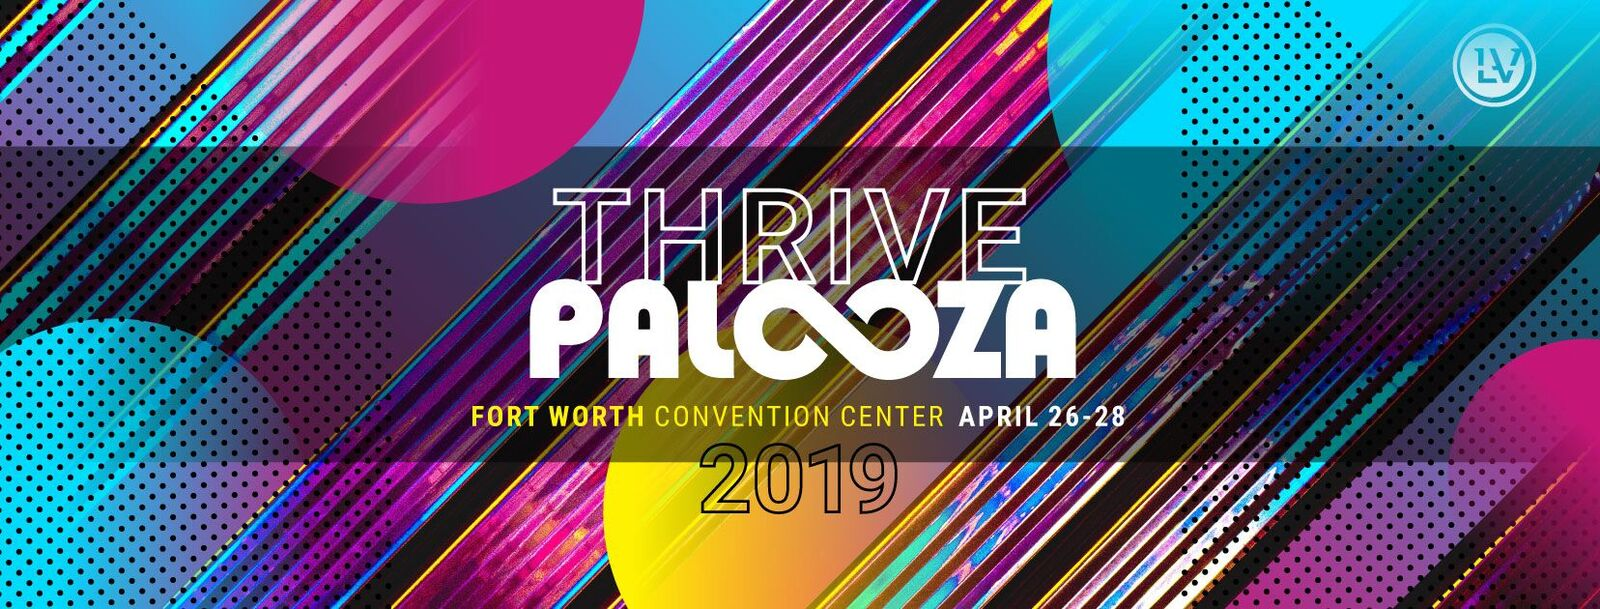 THRIVEPALOOZA 2019: A Guide to the Convention